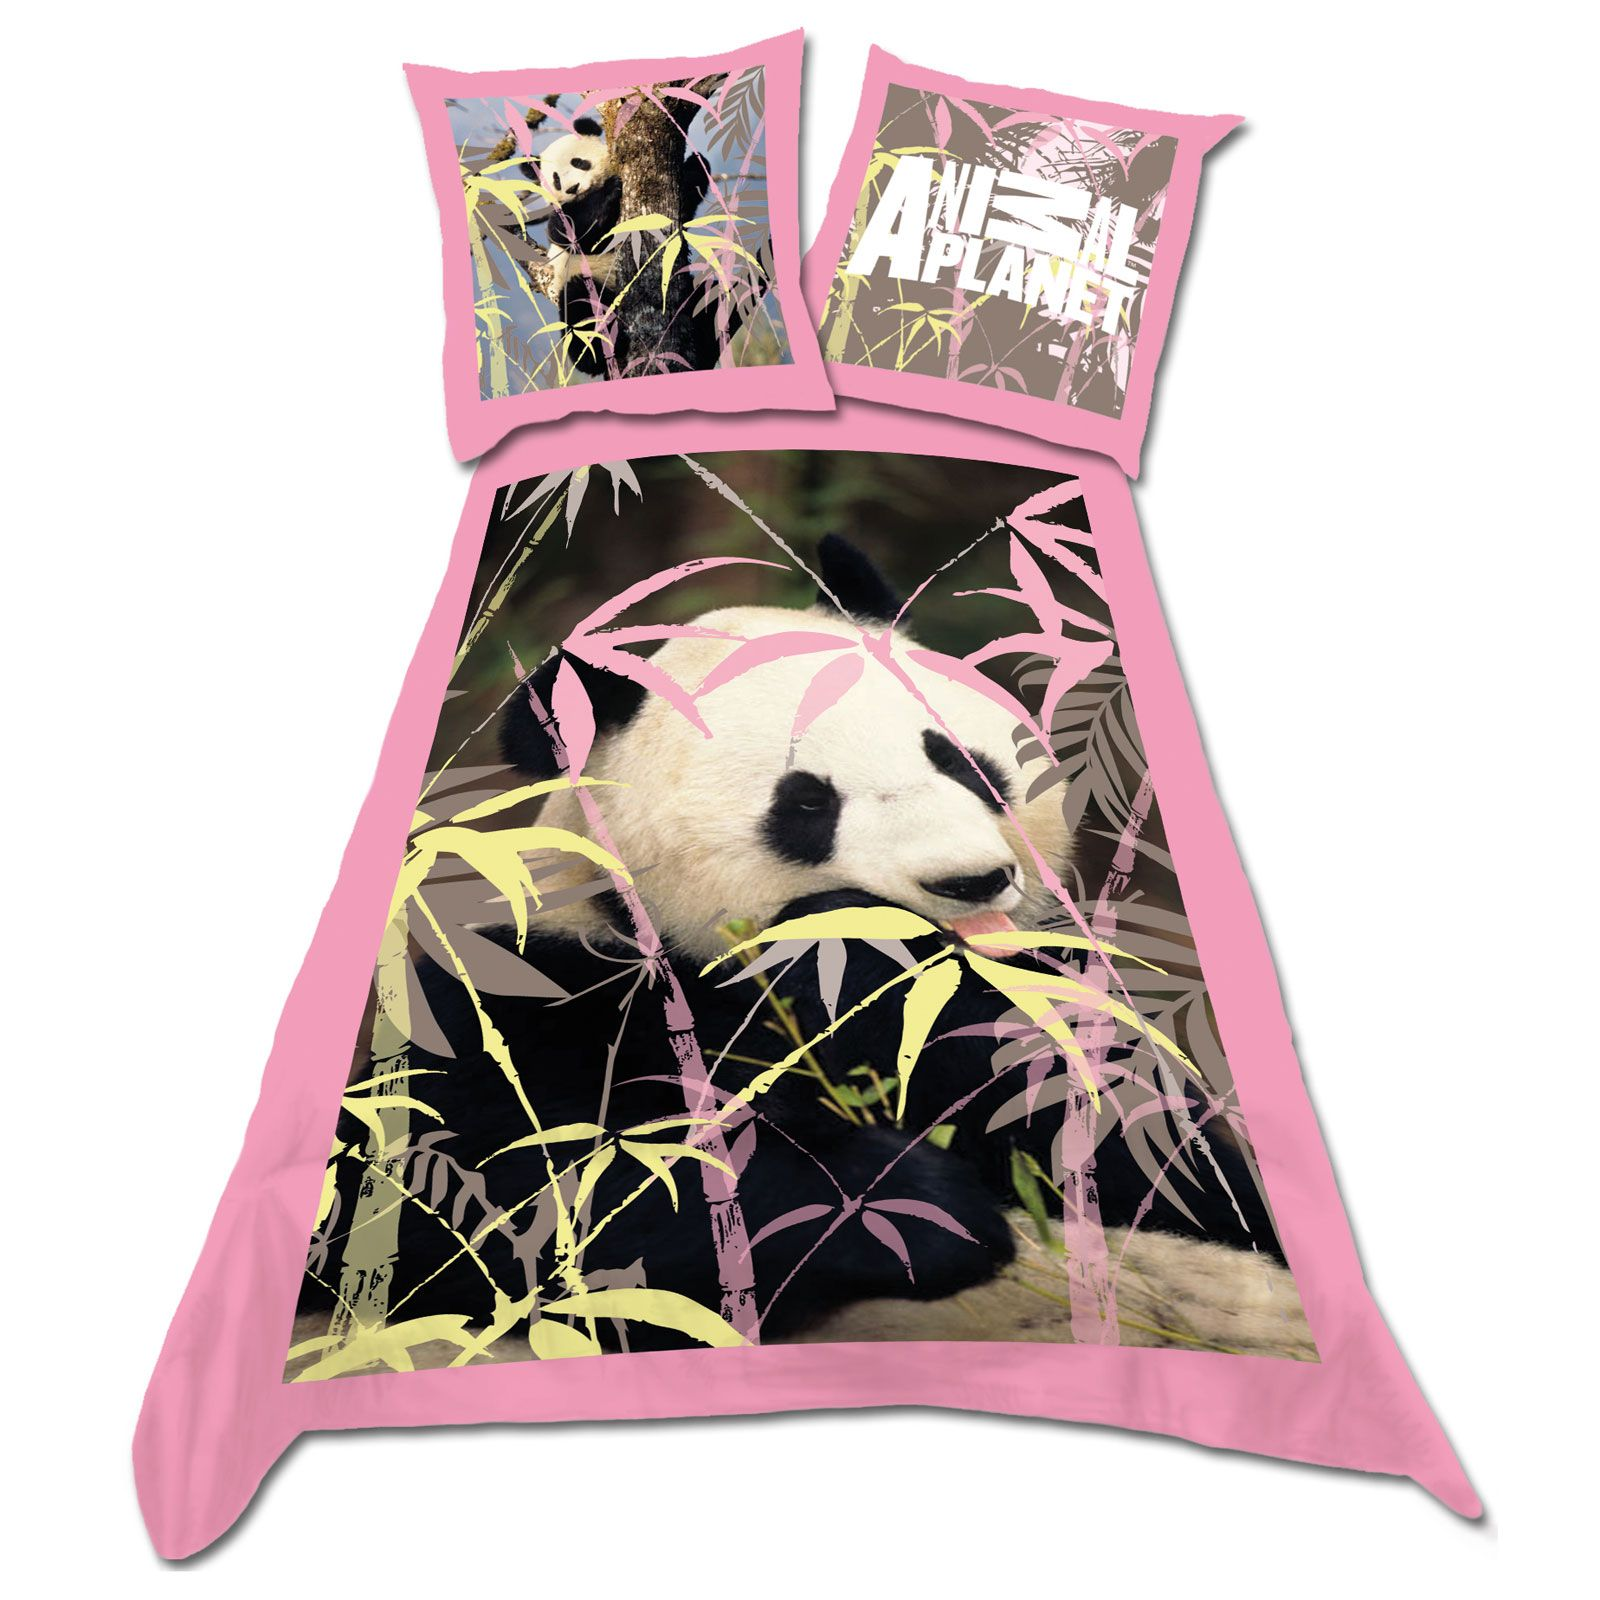 animal planet 39 panda bear 39 single duvet cover 100 cotton. Black Bedroom Furniture Sets. Home Design Ideas